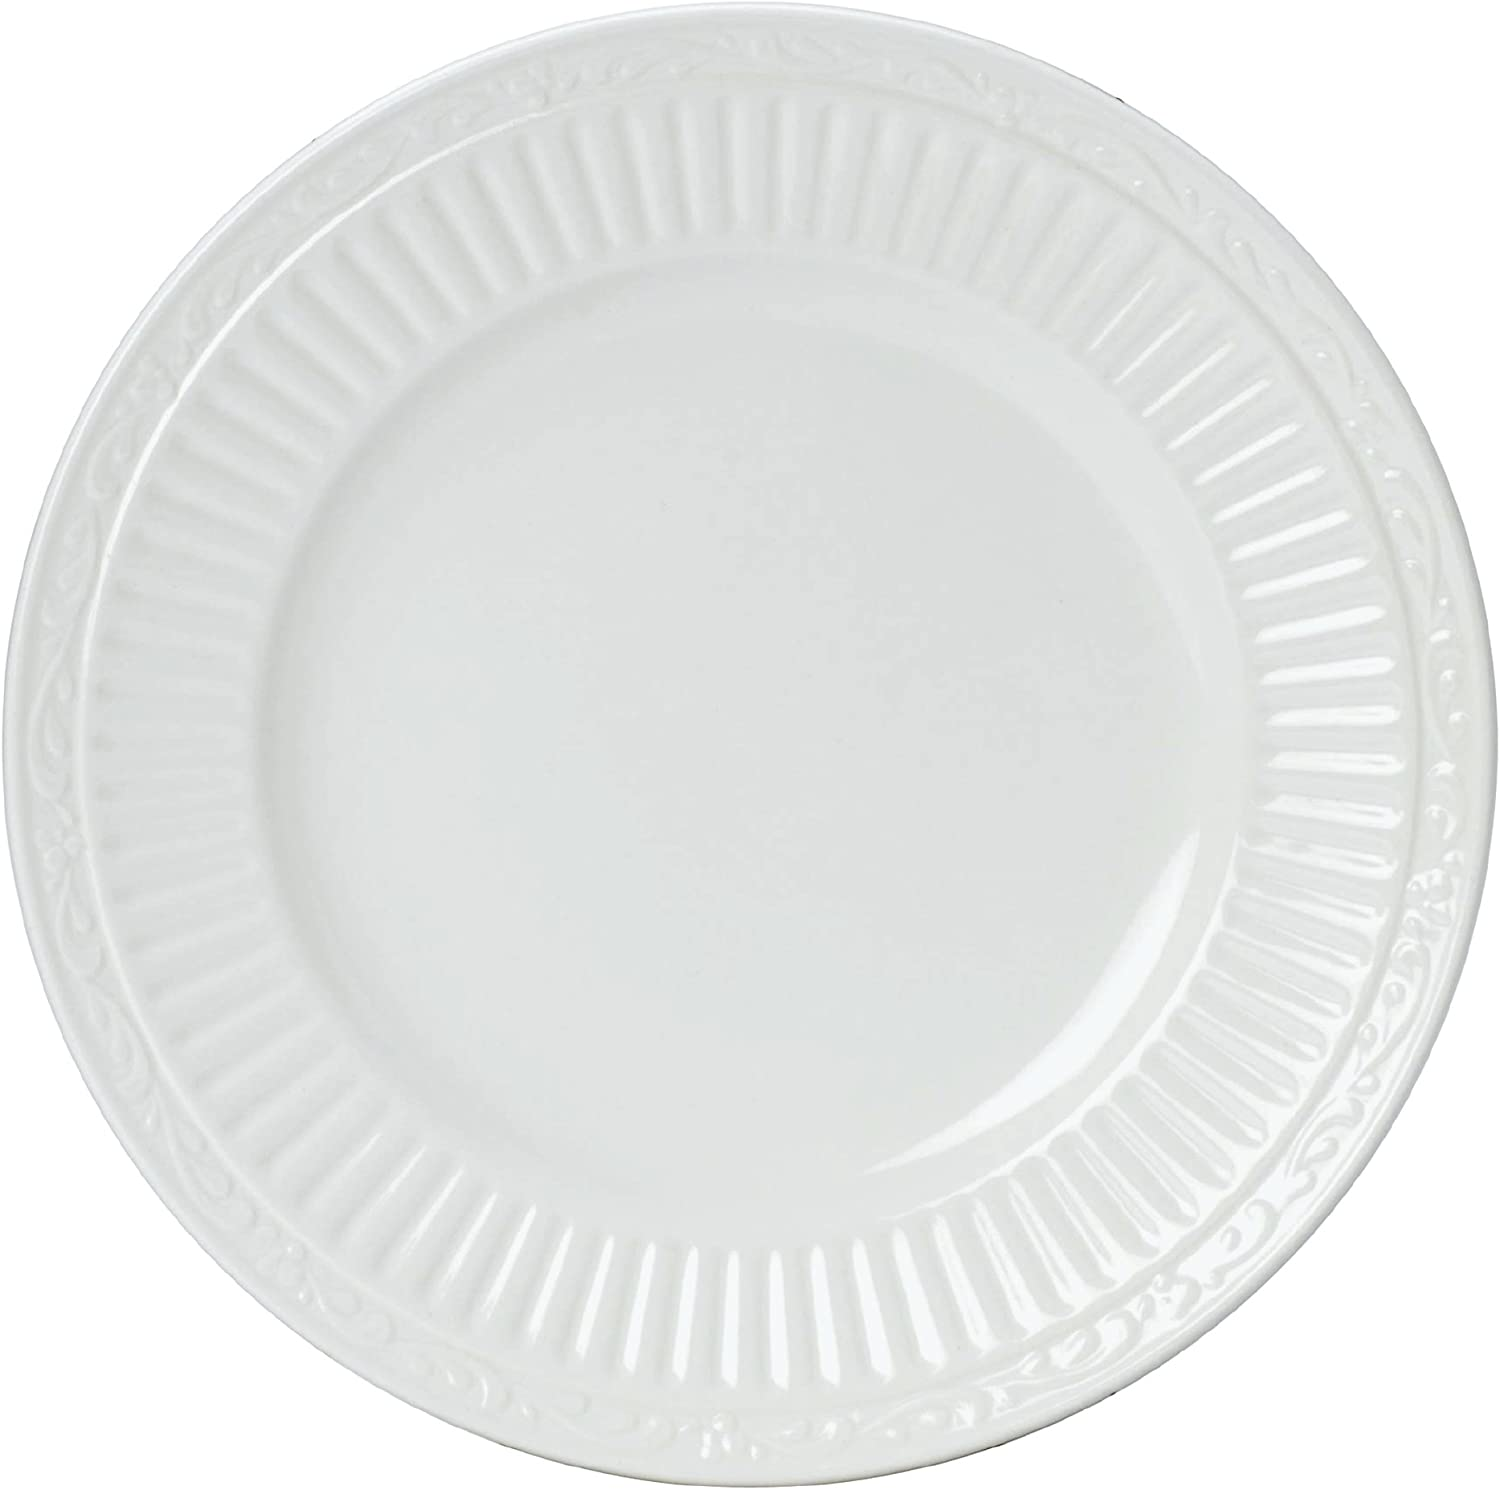 Mikasa Italian Countryside Bread And Butter Plate 6 75 Inch White Single Dd900 203 White Bread And Butter Plate Bread Butter Plates Amazon Com